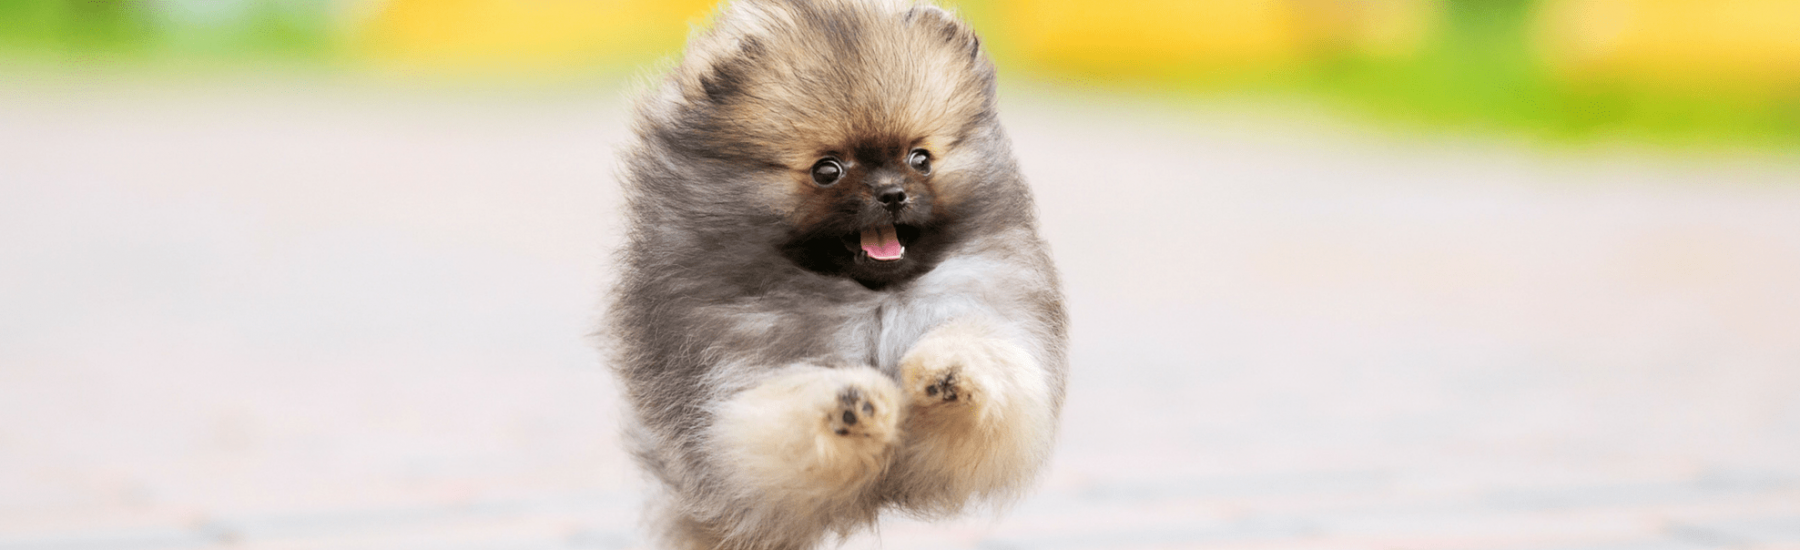 A super fluffy small dog running at the camera with its tongue out.